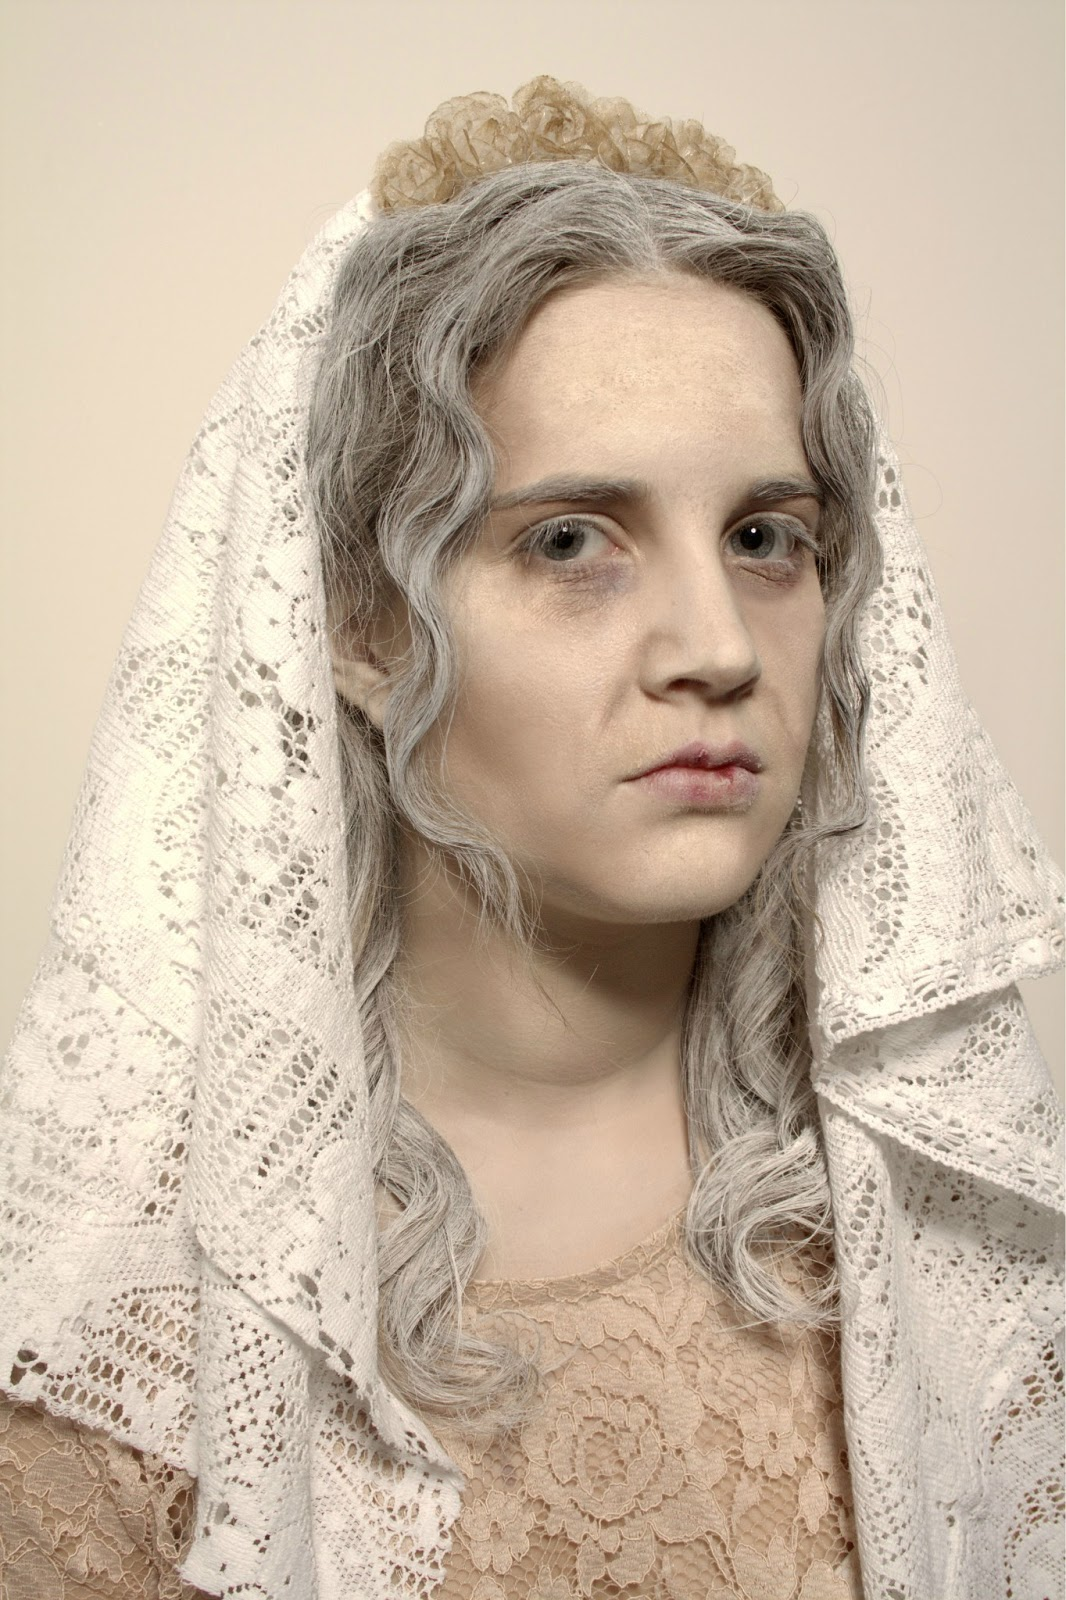 MFS109 Great Expectations: Final Images of Miss Havisham